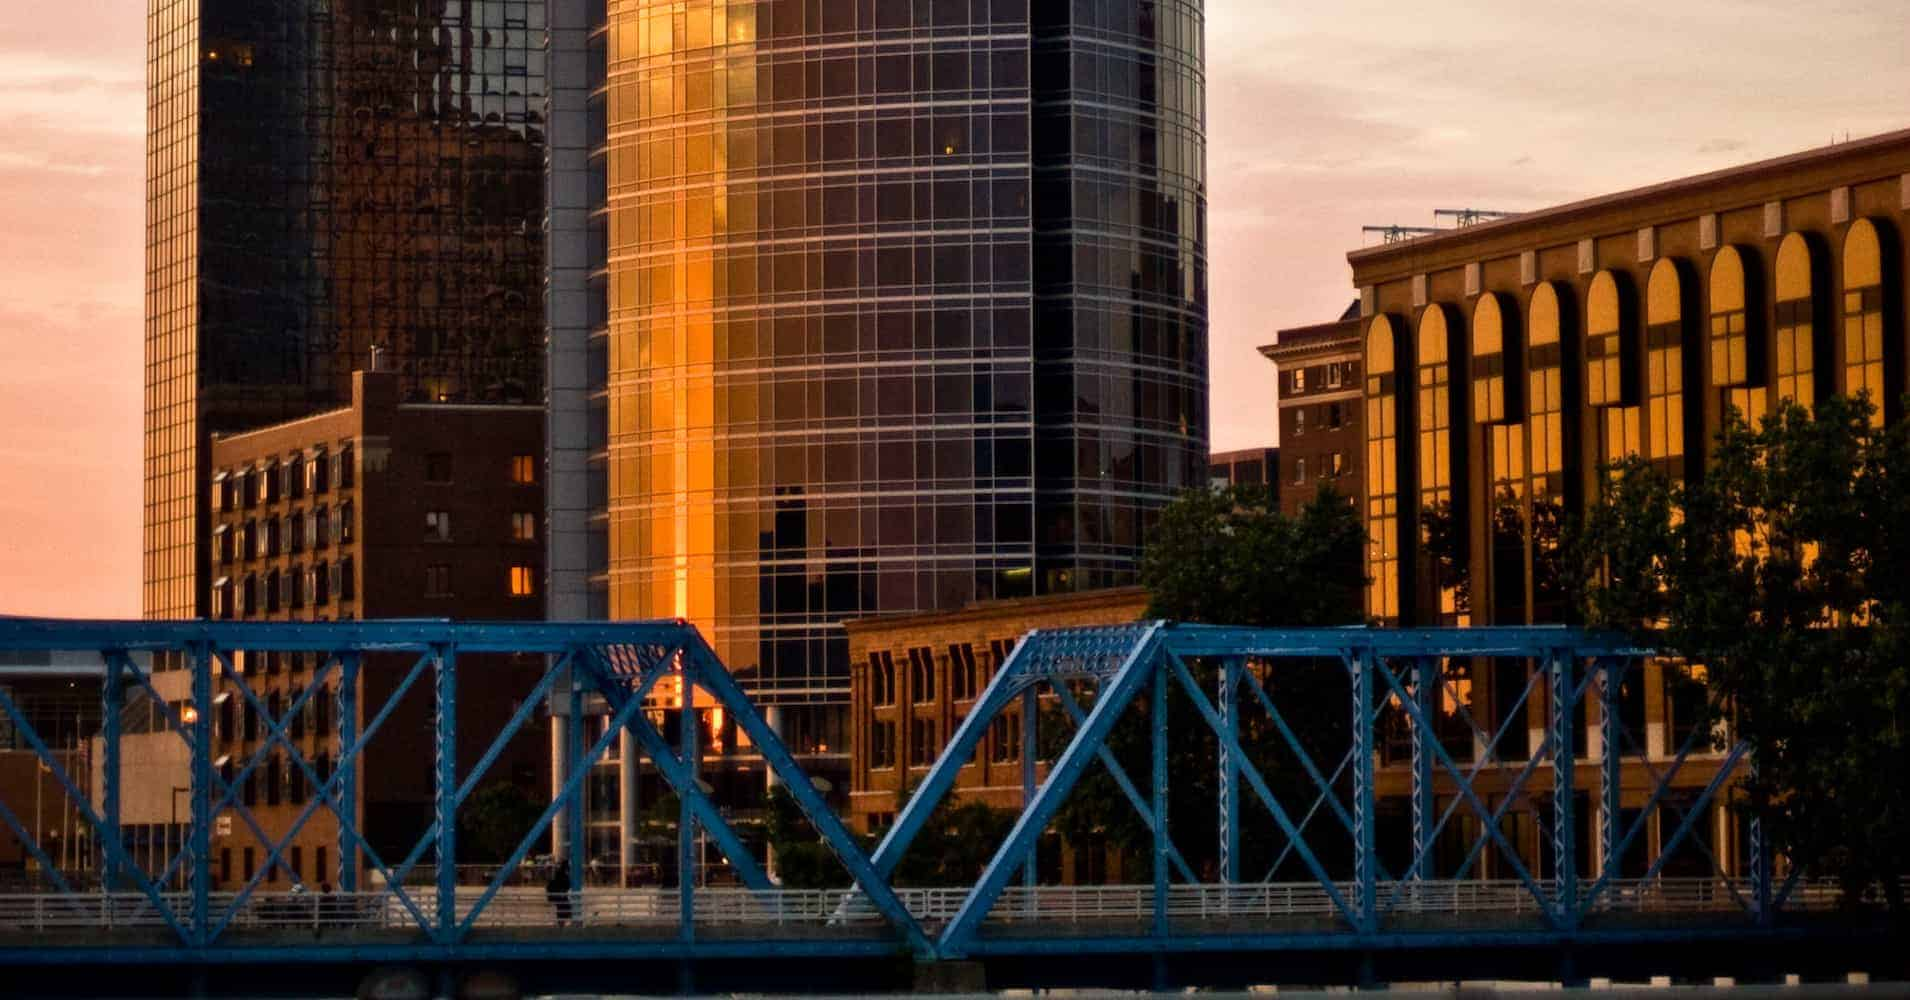 Grand Rapids Itinerary Featured - Dustin Tinney via Flickr